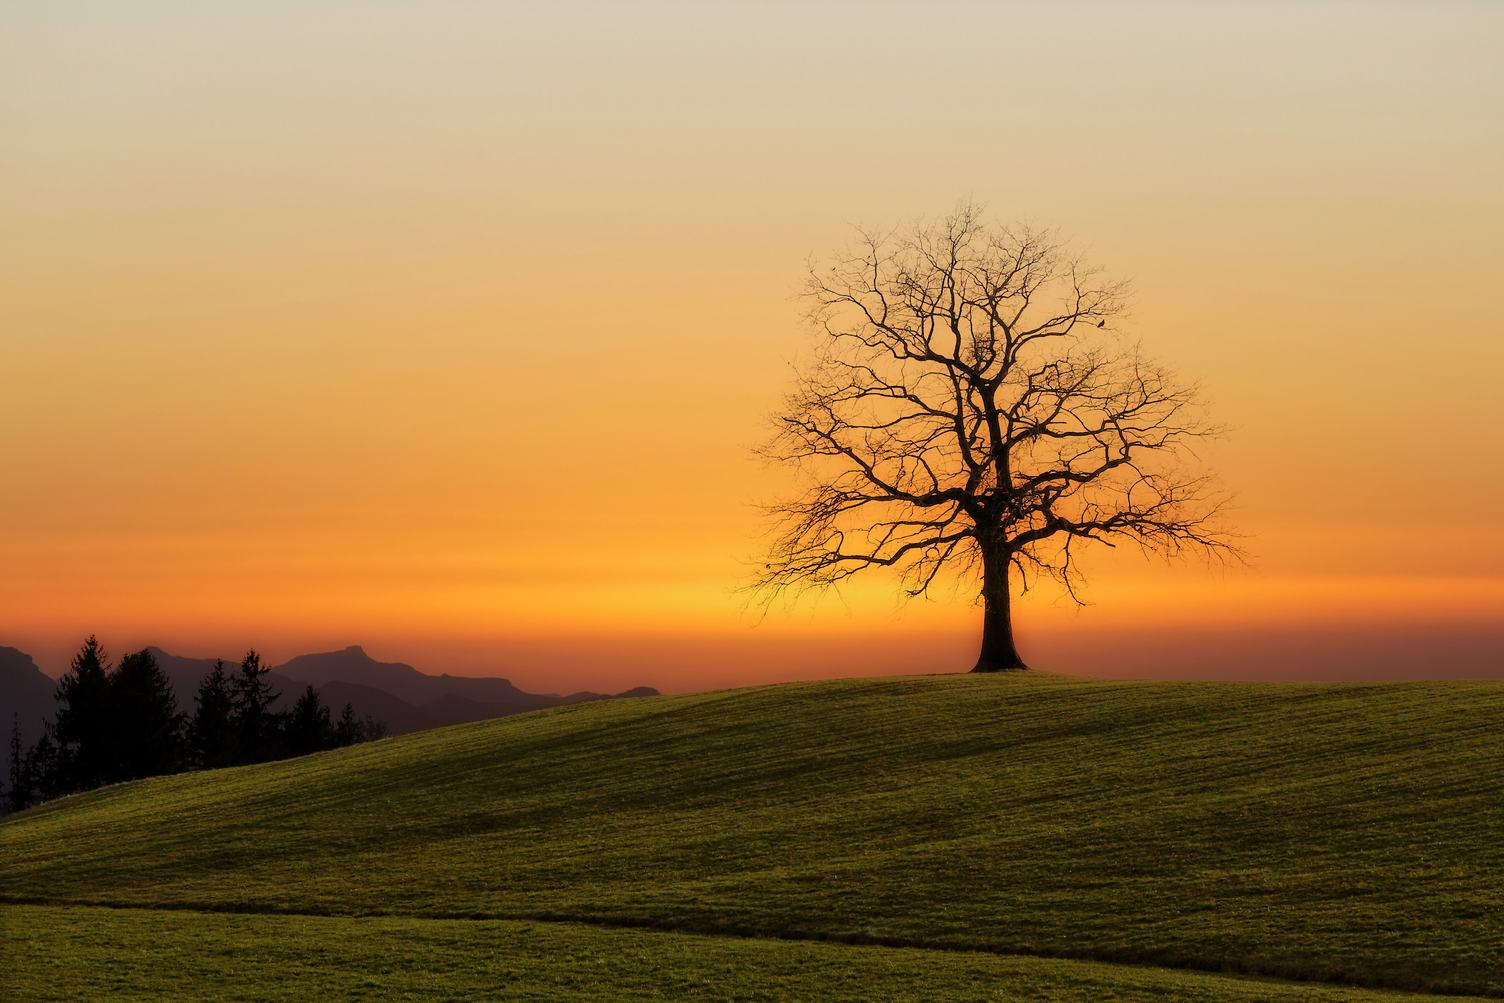 Landscape with Silhouette of Solitaire Tree on Horizon at Sunset